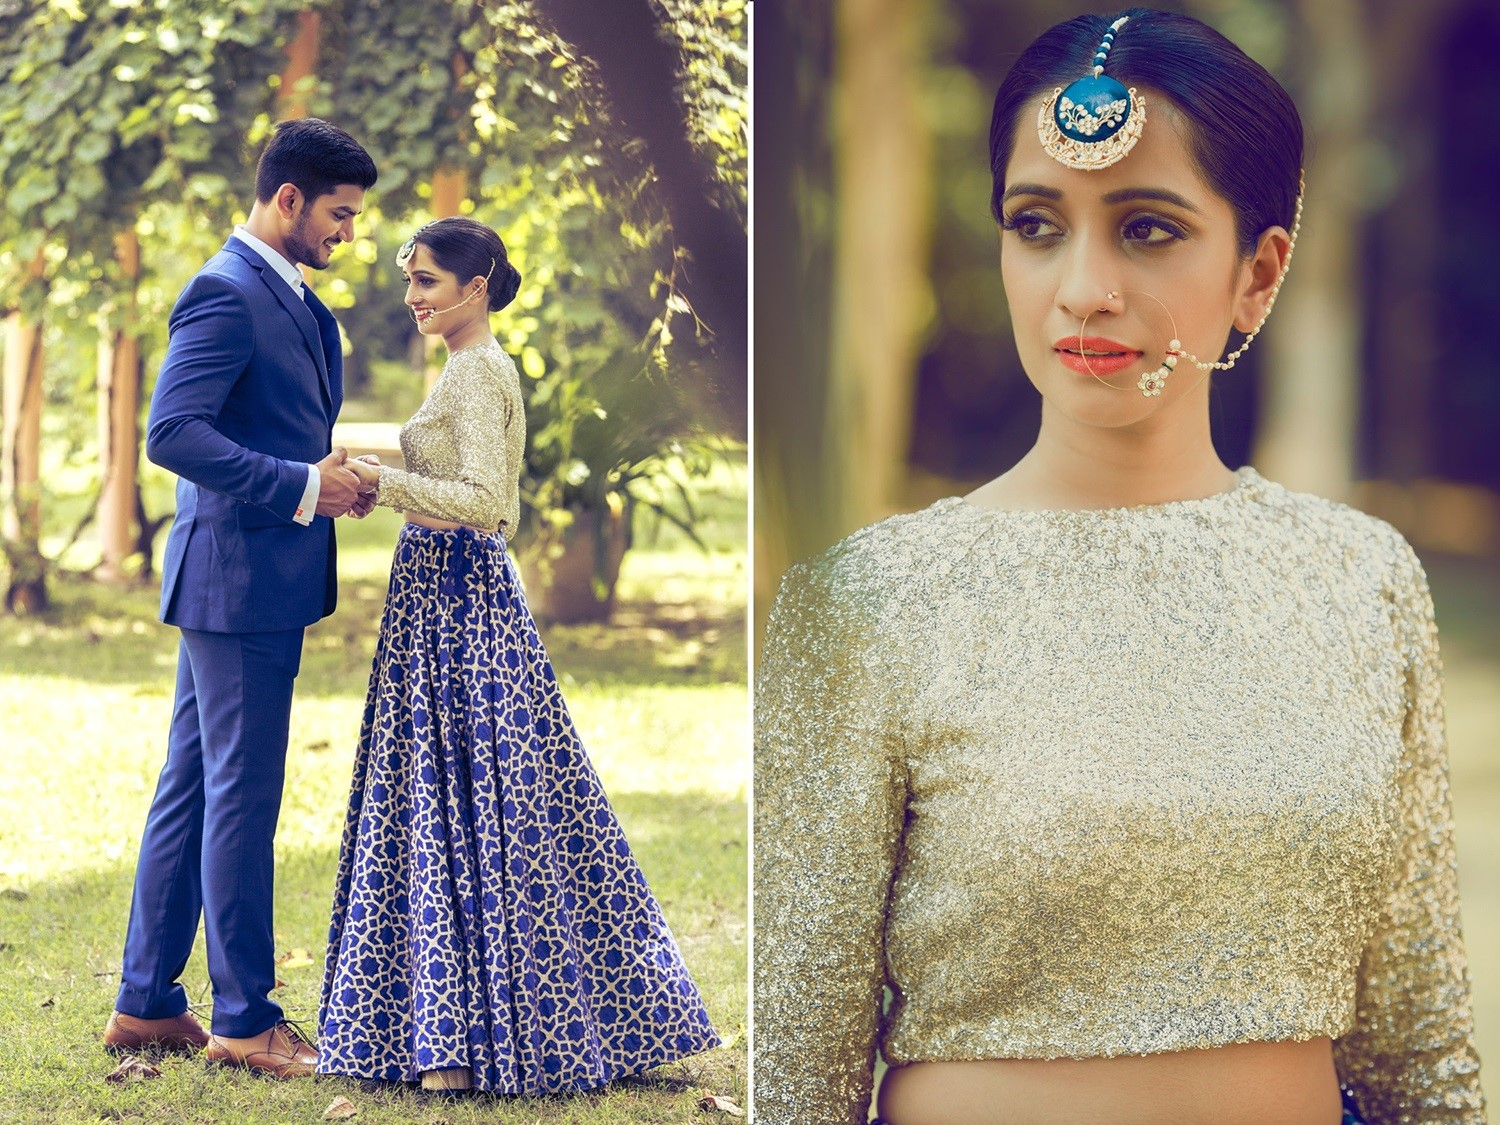 unique maang tikka design worn by bride with blue lehenga and delicate nath